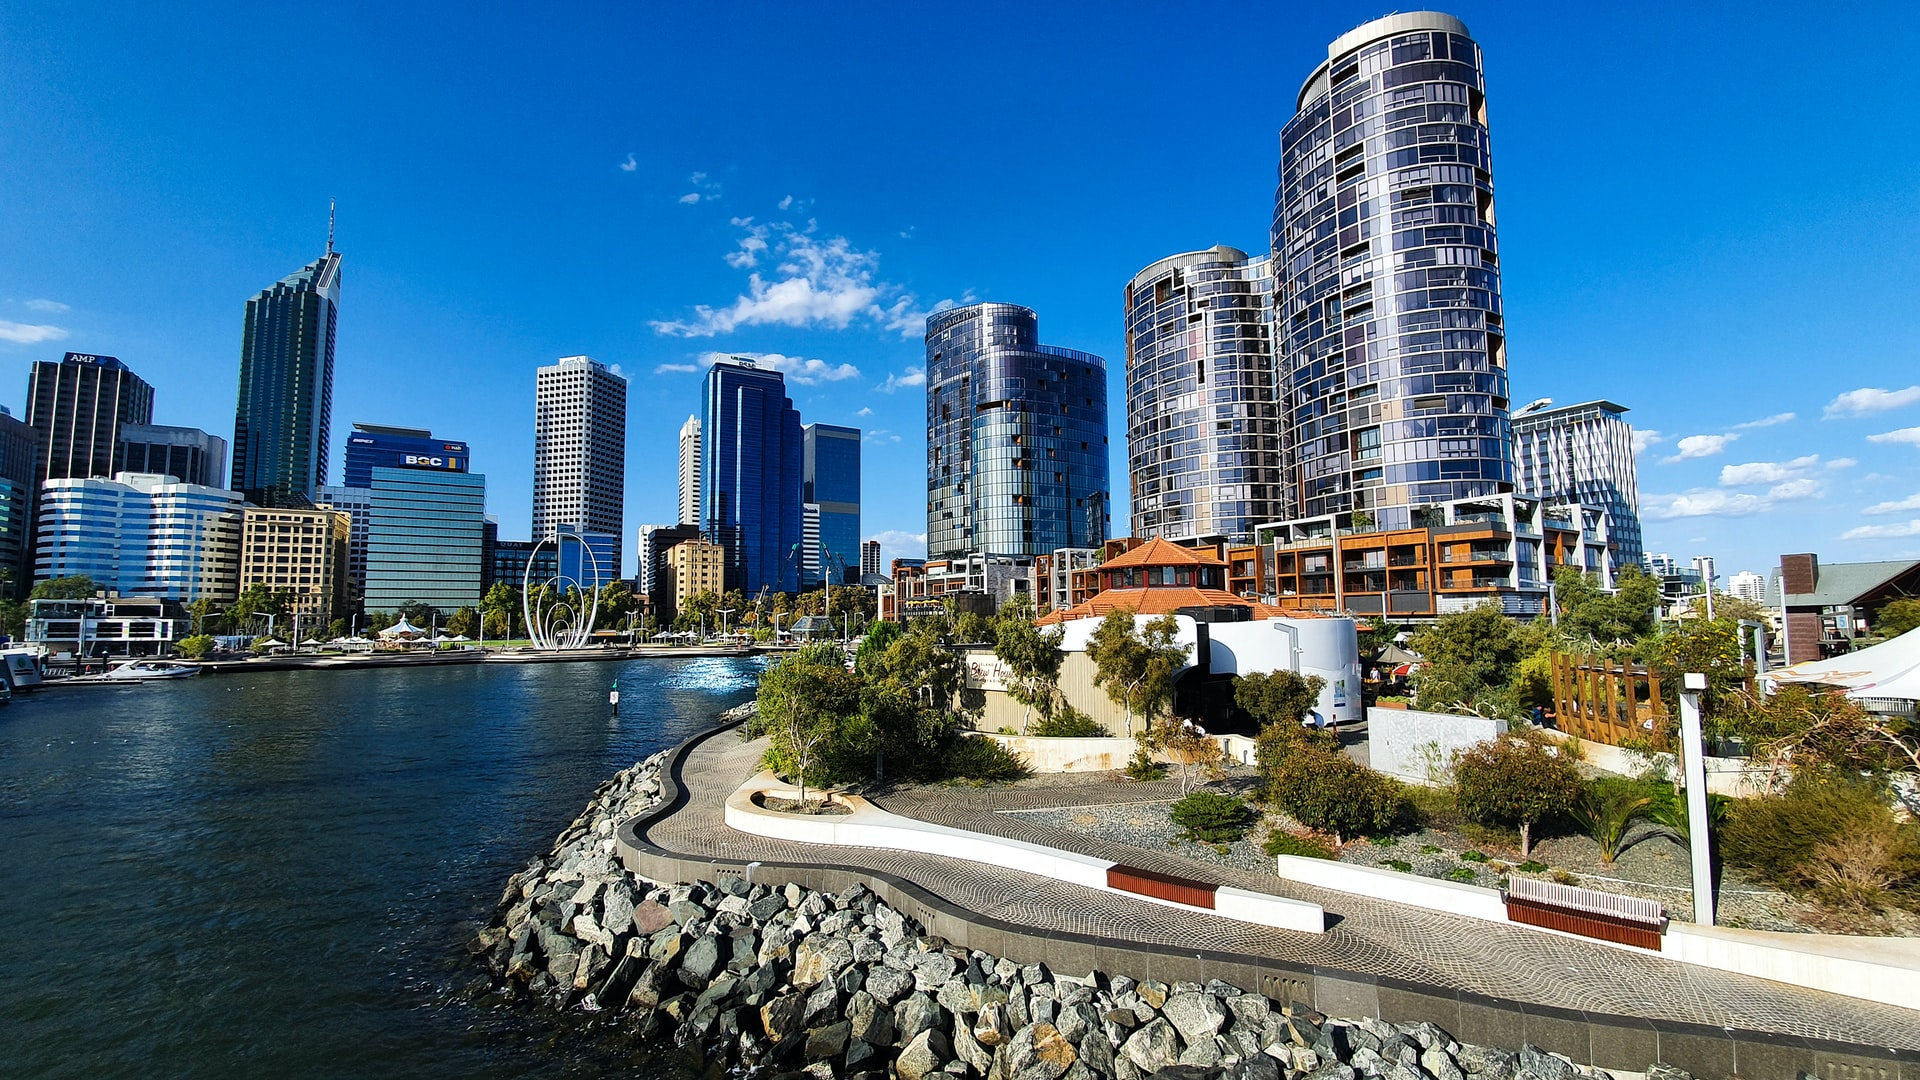 Perth works to revitalise CBD as part of $1.5B plan